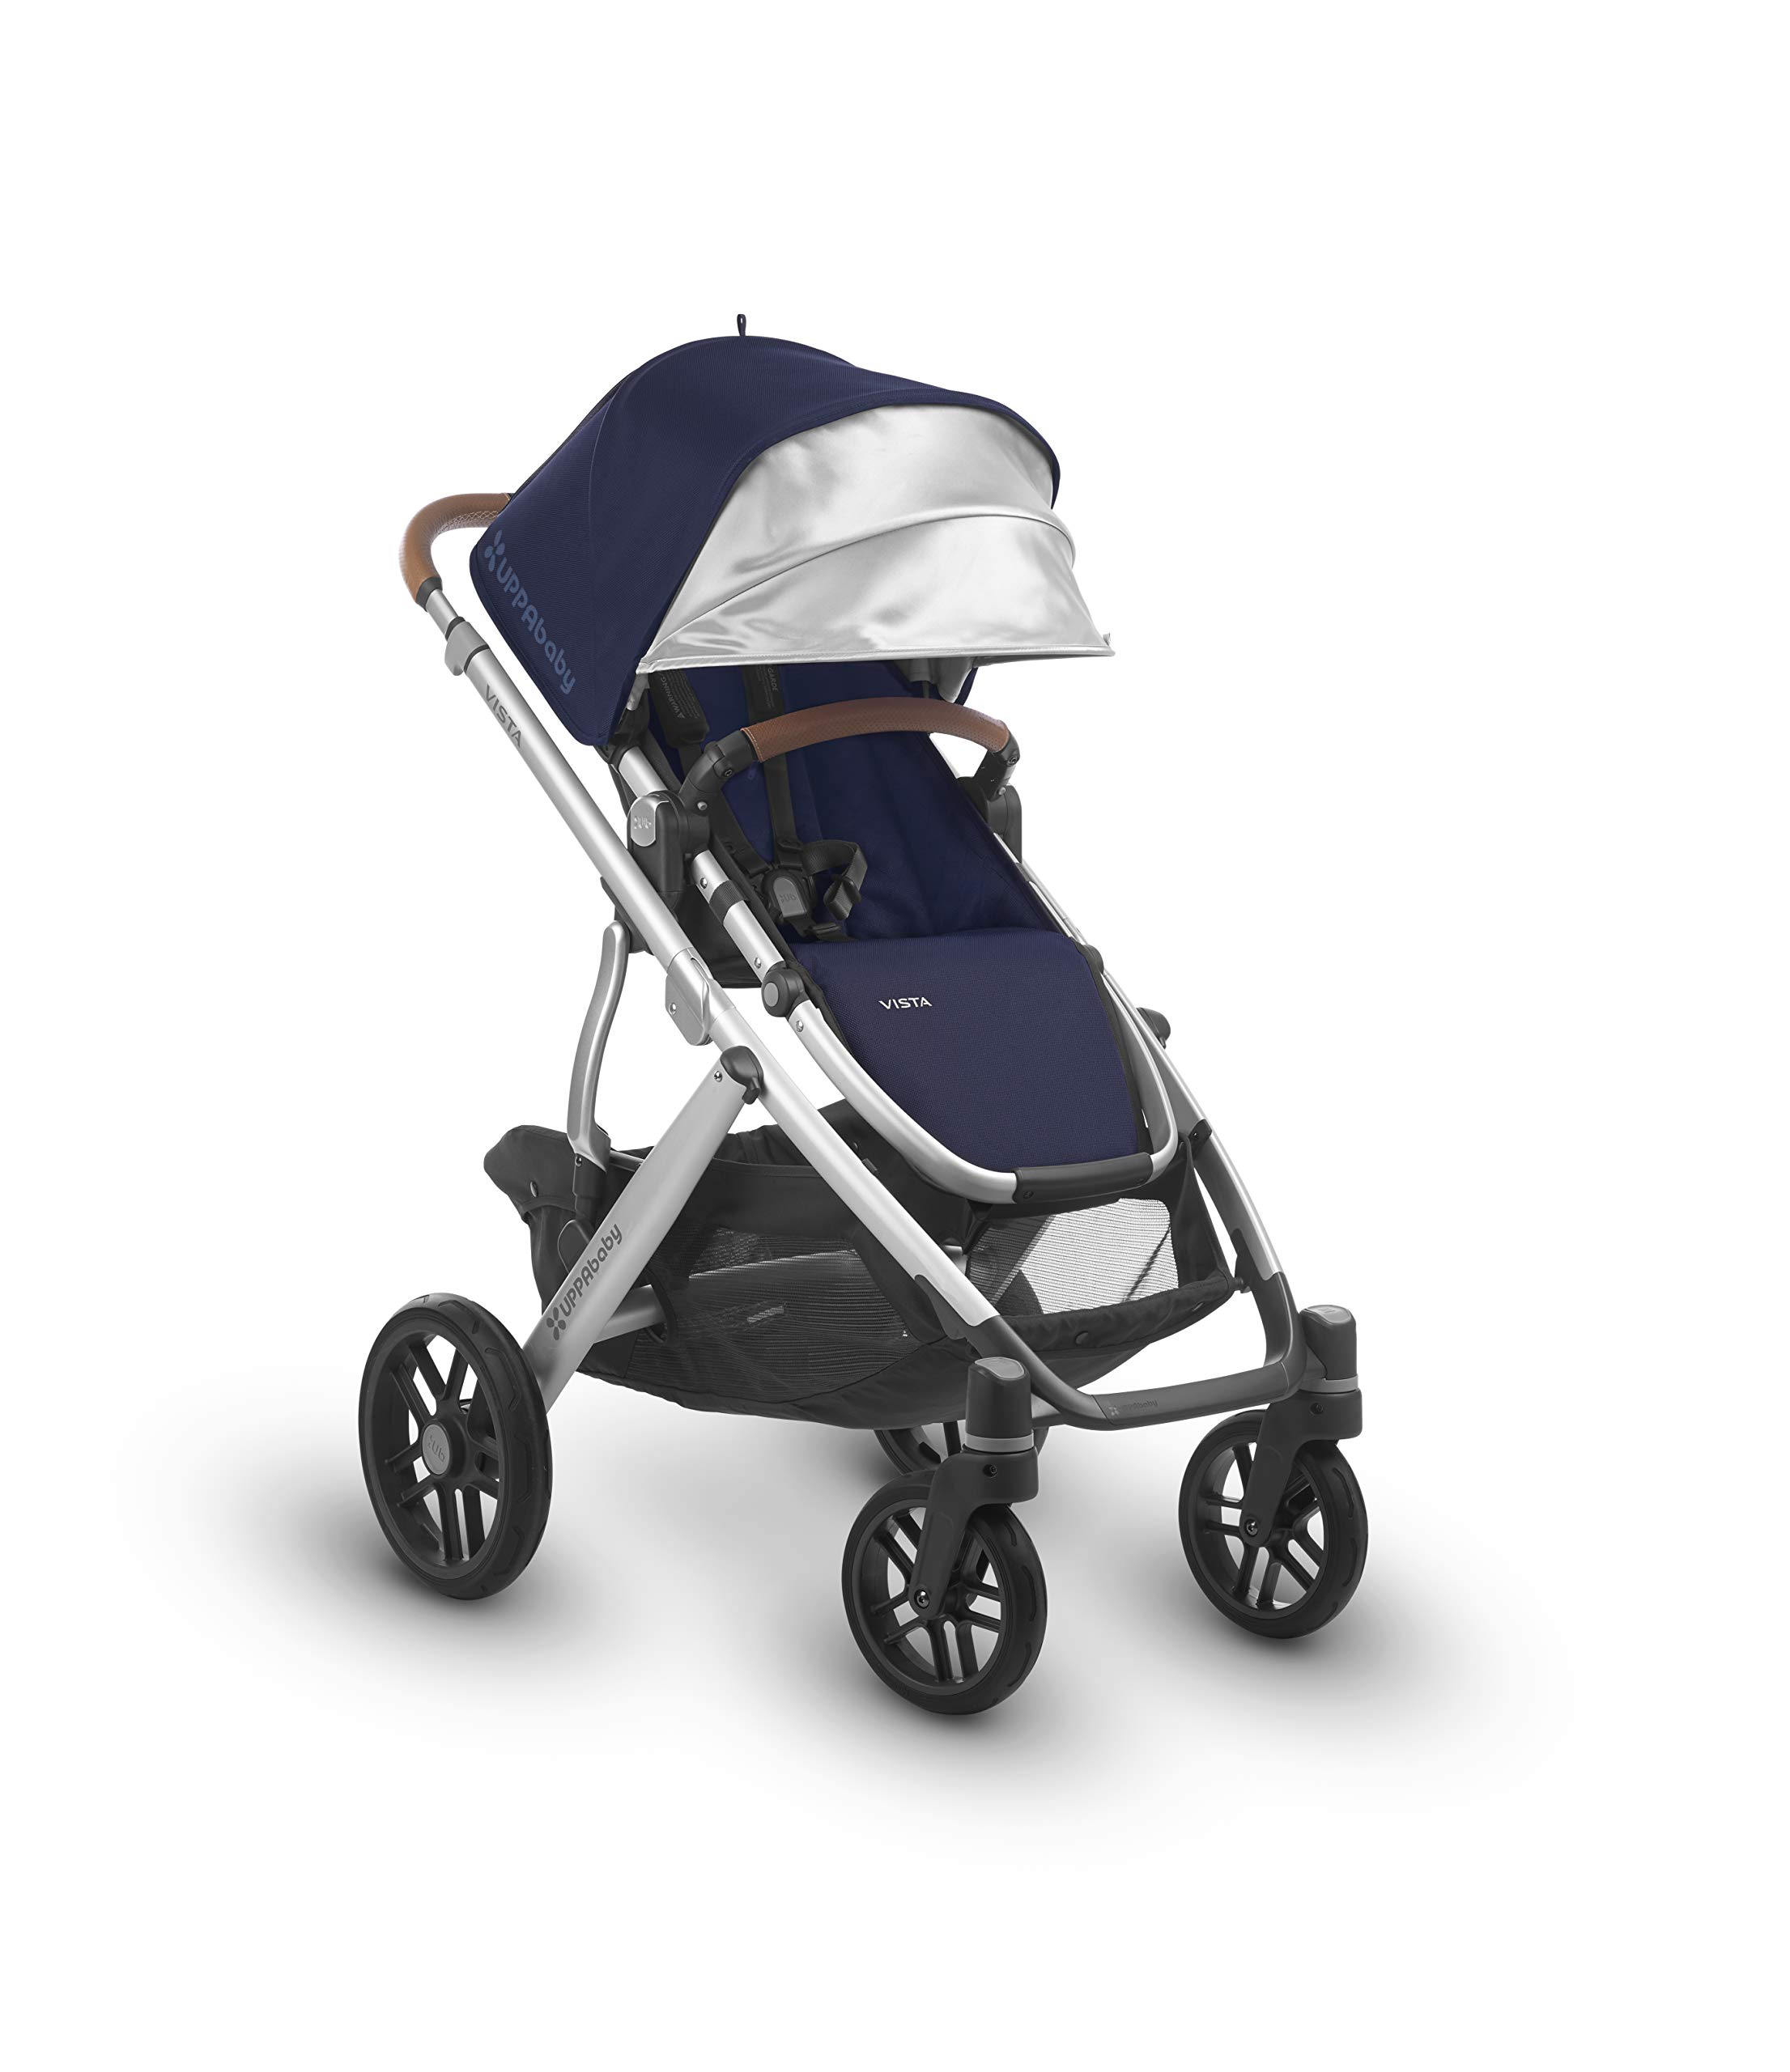 Uppababy Pushchair, Taylor Navy UPPAbaby A pushchair/ travel system with all weather protection Can be upgraded to carry two or three children with additional accessories Large basket 2